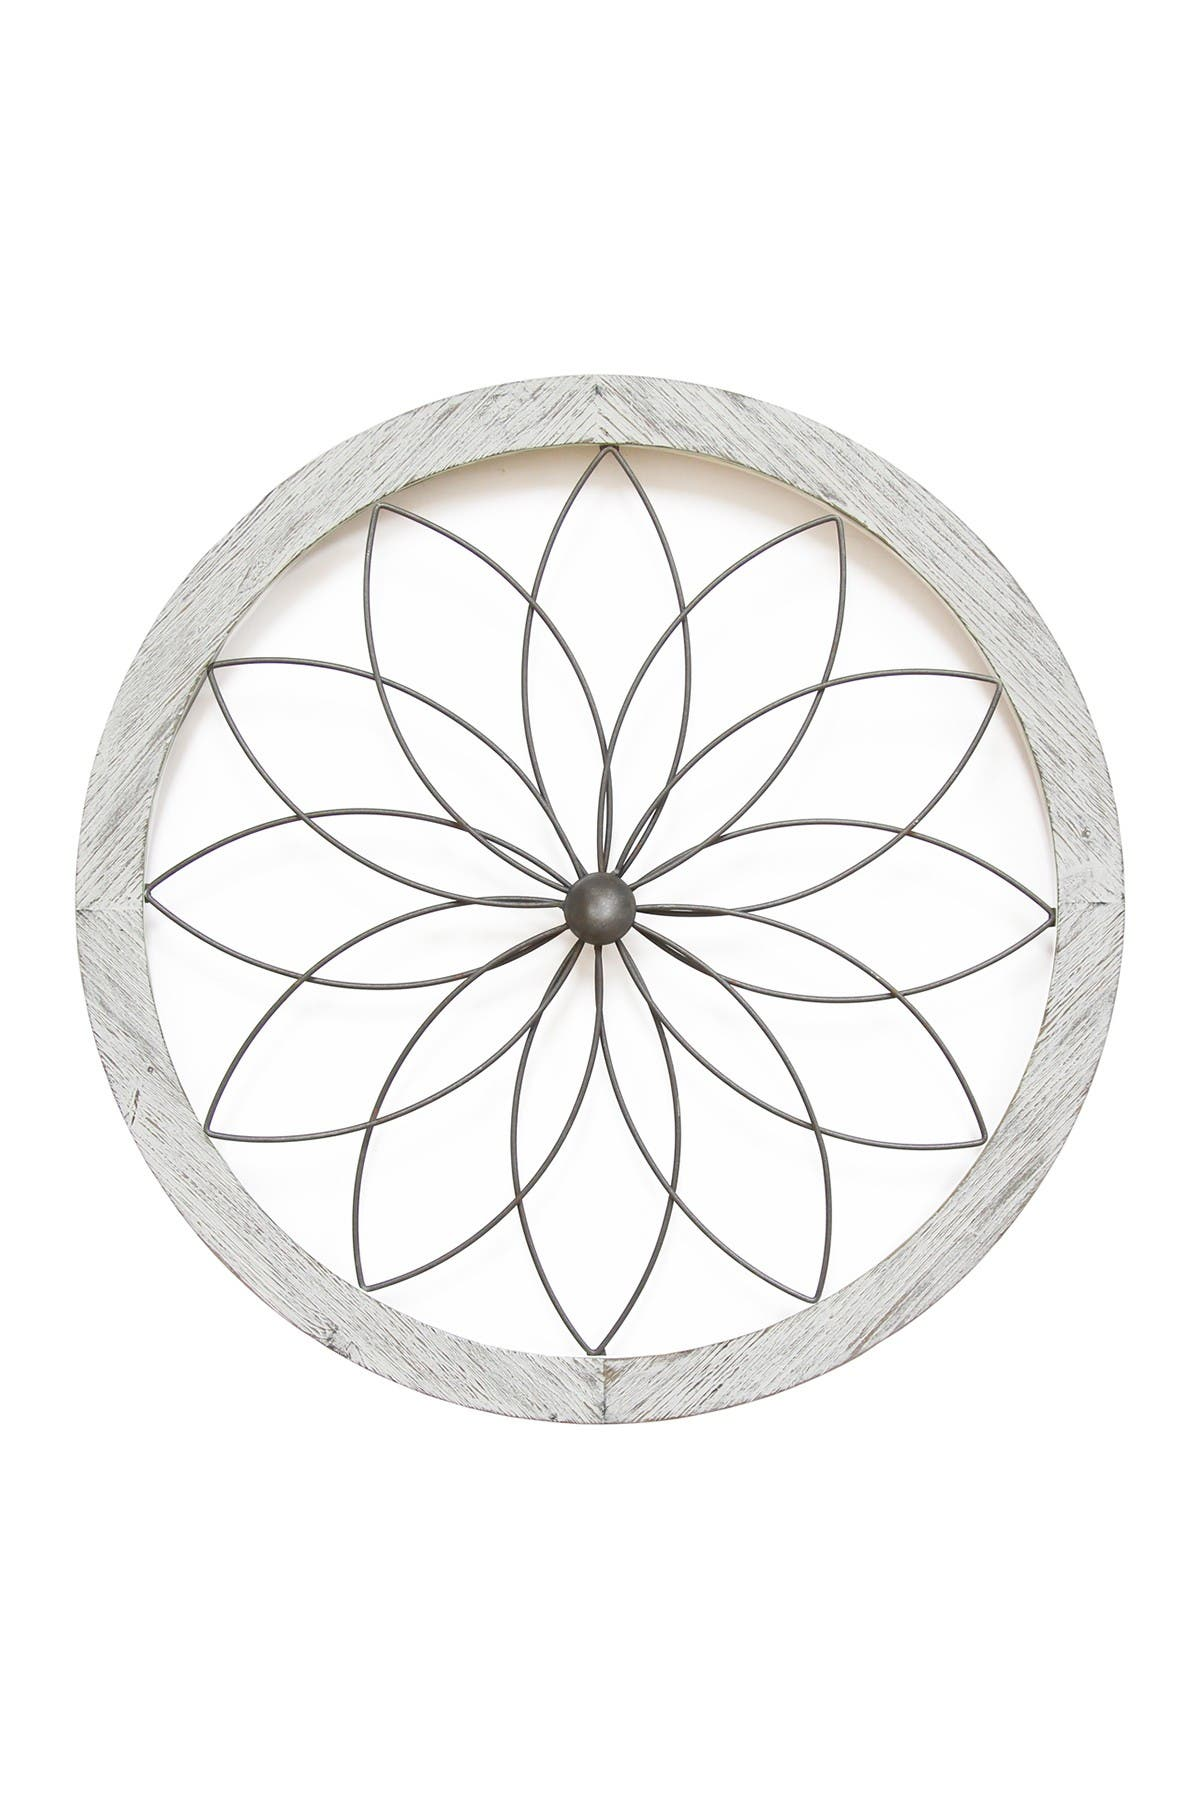 Image of Stratton Home White Flower Metal & Wood Art Deco Wall Decor